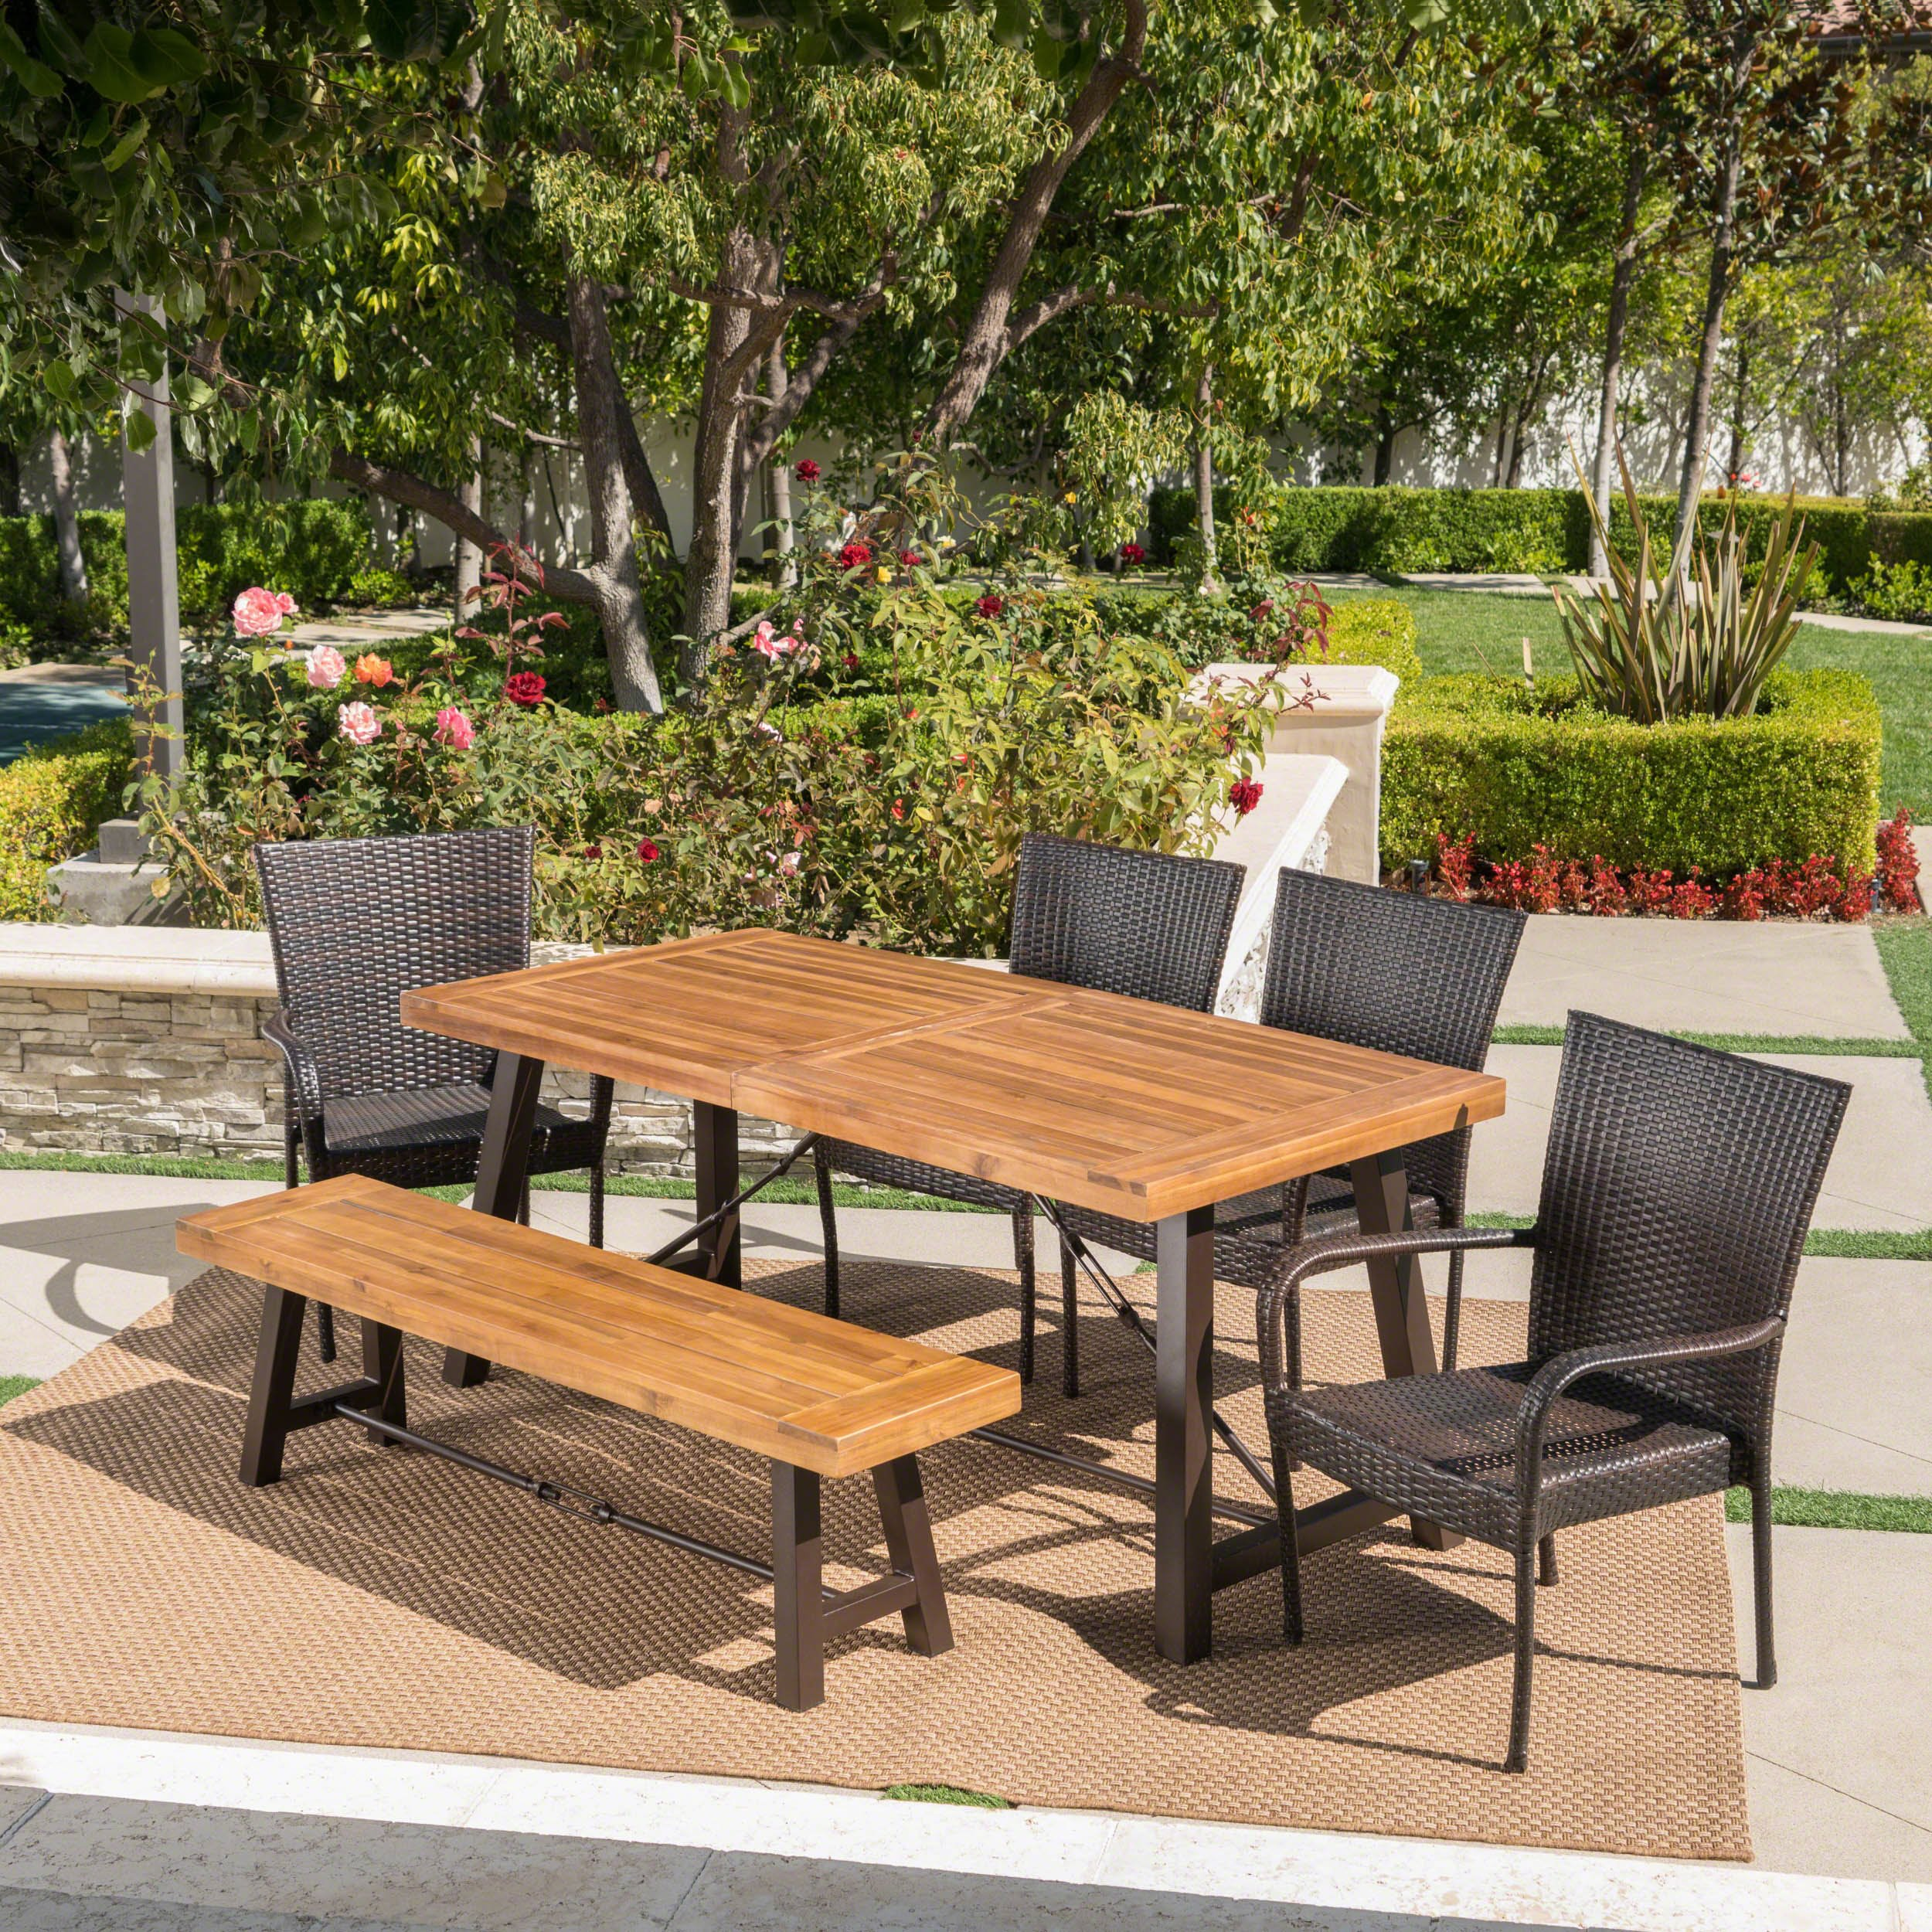 Great Deal Furniture Salla | 6 Piece Outdoor Acacia Wood Dining Set with Wicker Stacking Chairs | in Multibrown with Teak Finish by Great Deal Furniture (Image #2)